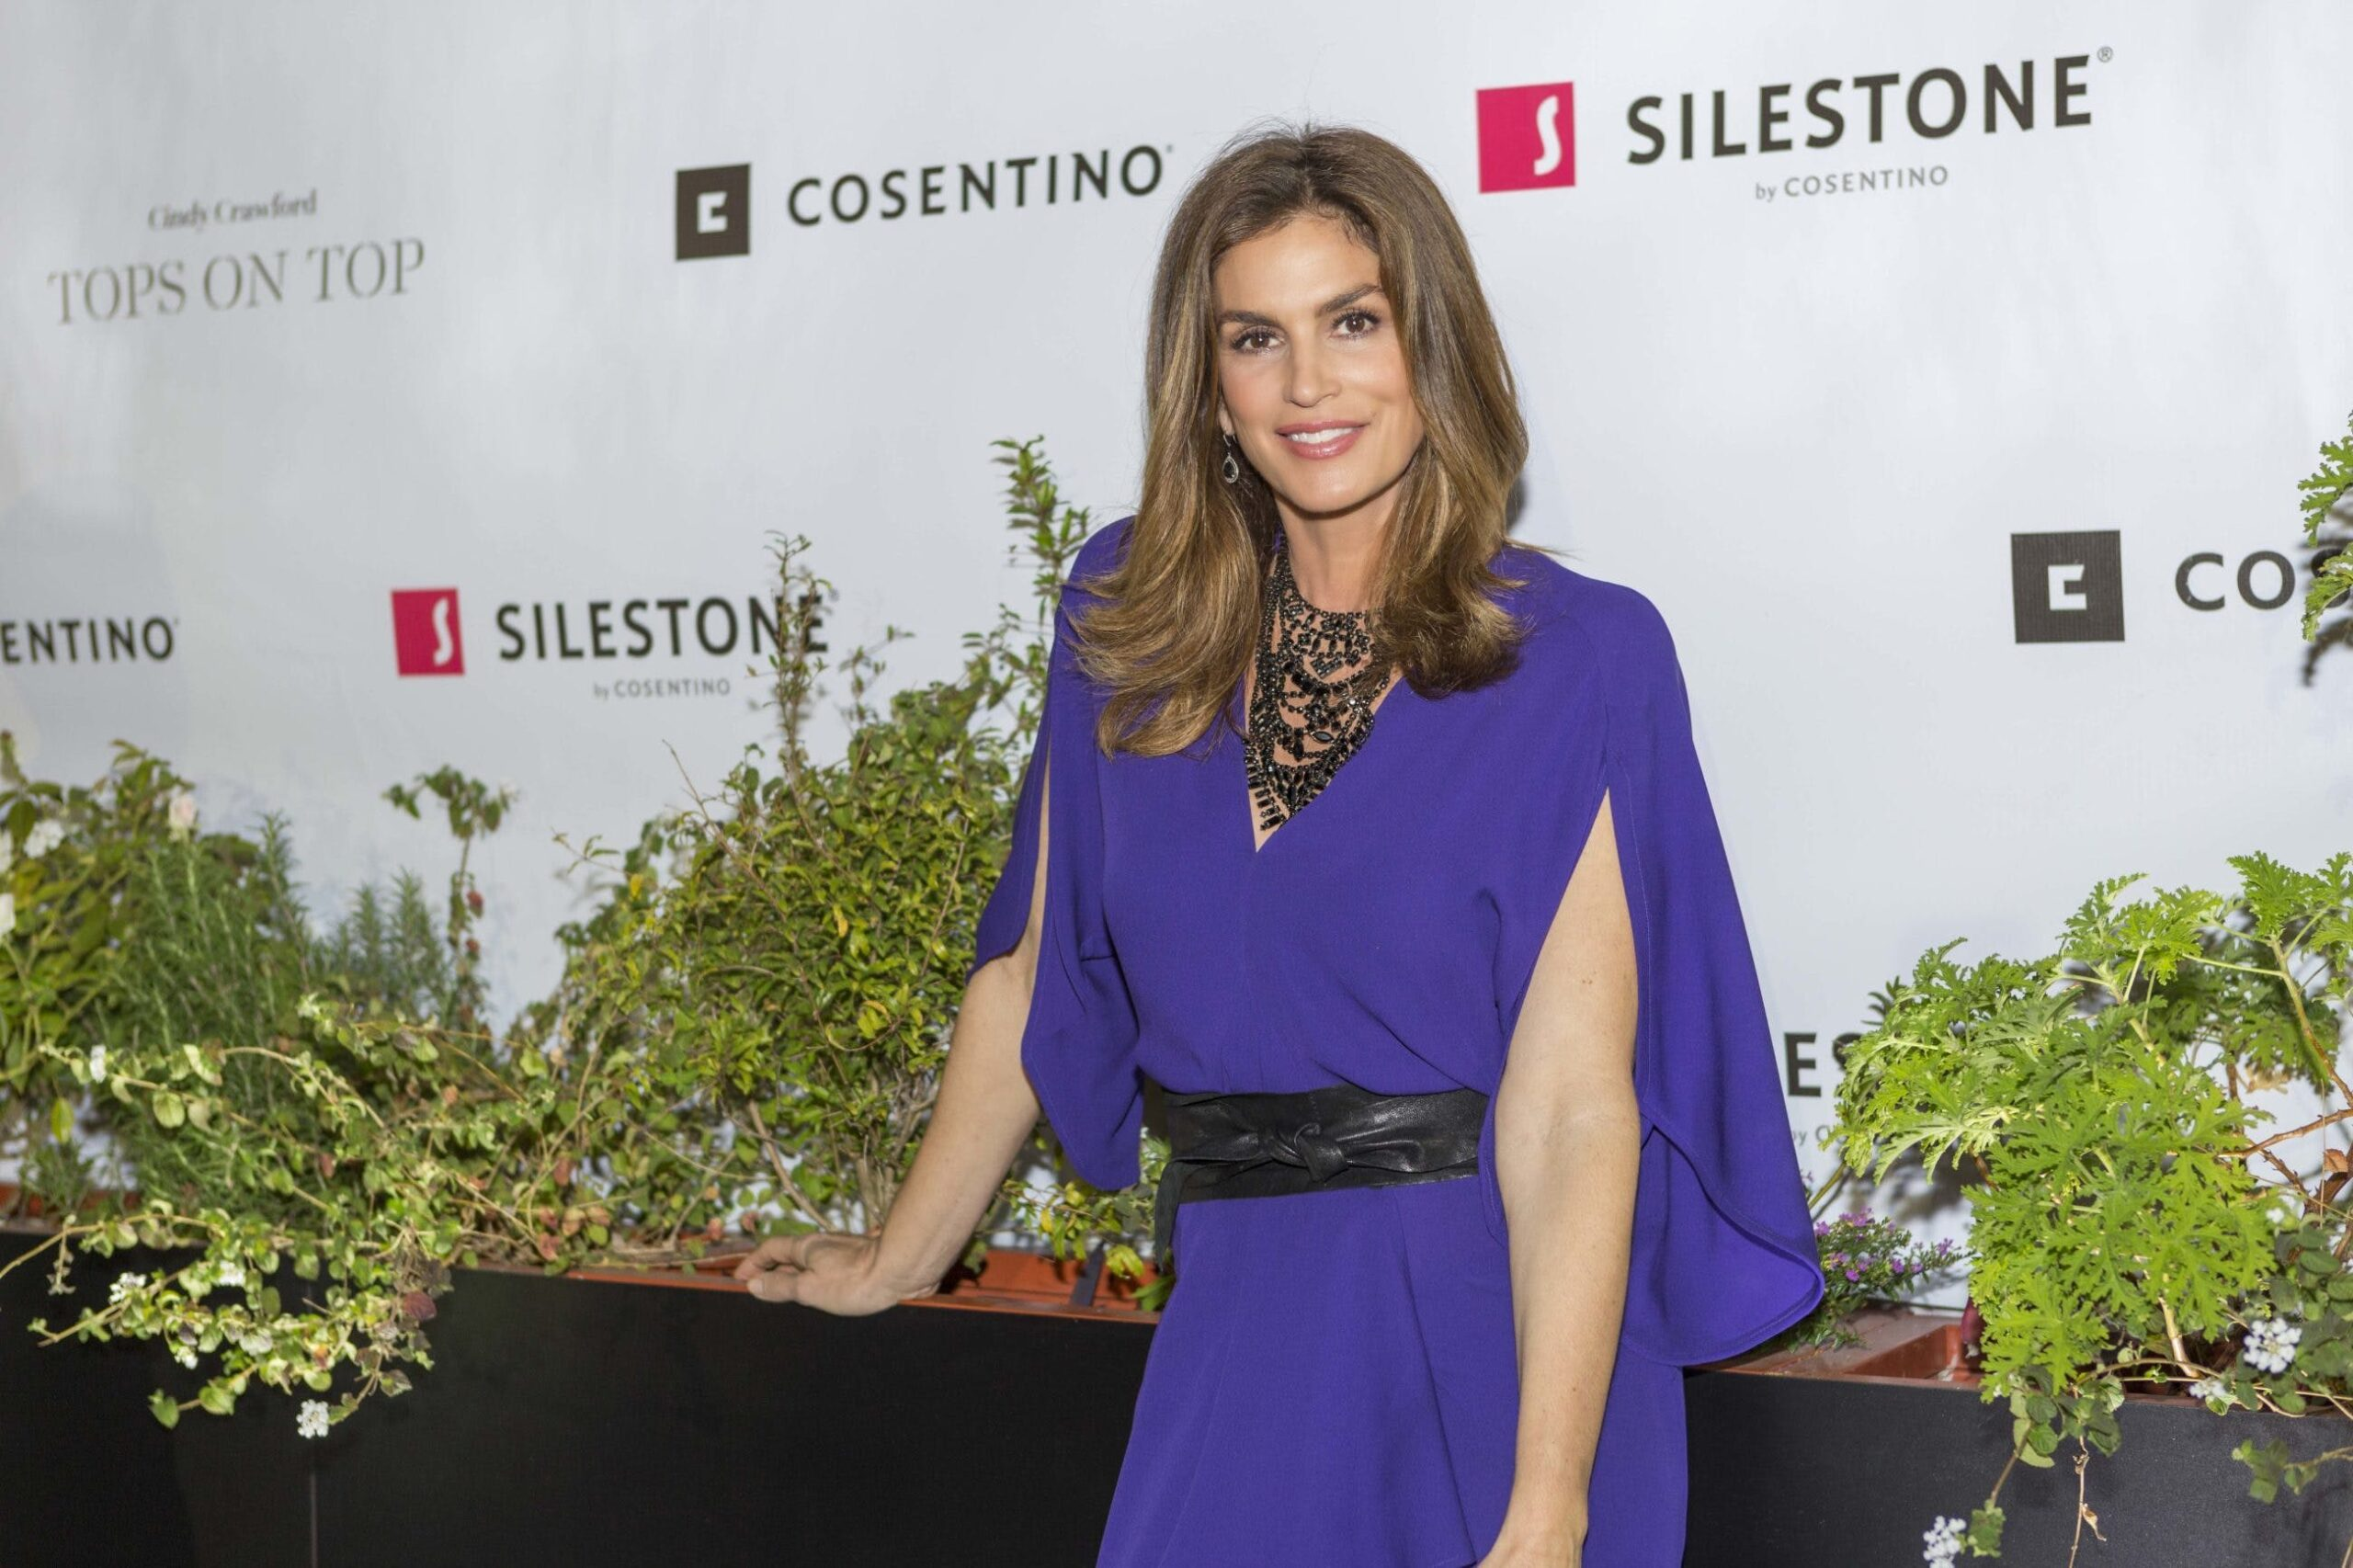 """Image of Cindy Crawford Cosentino 7 prensa 1 scaled in Cindy Crawford and """"Tops on Top"""" by Silestone® in Houston - Cosentino"""